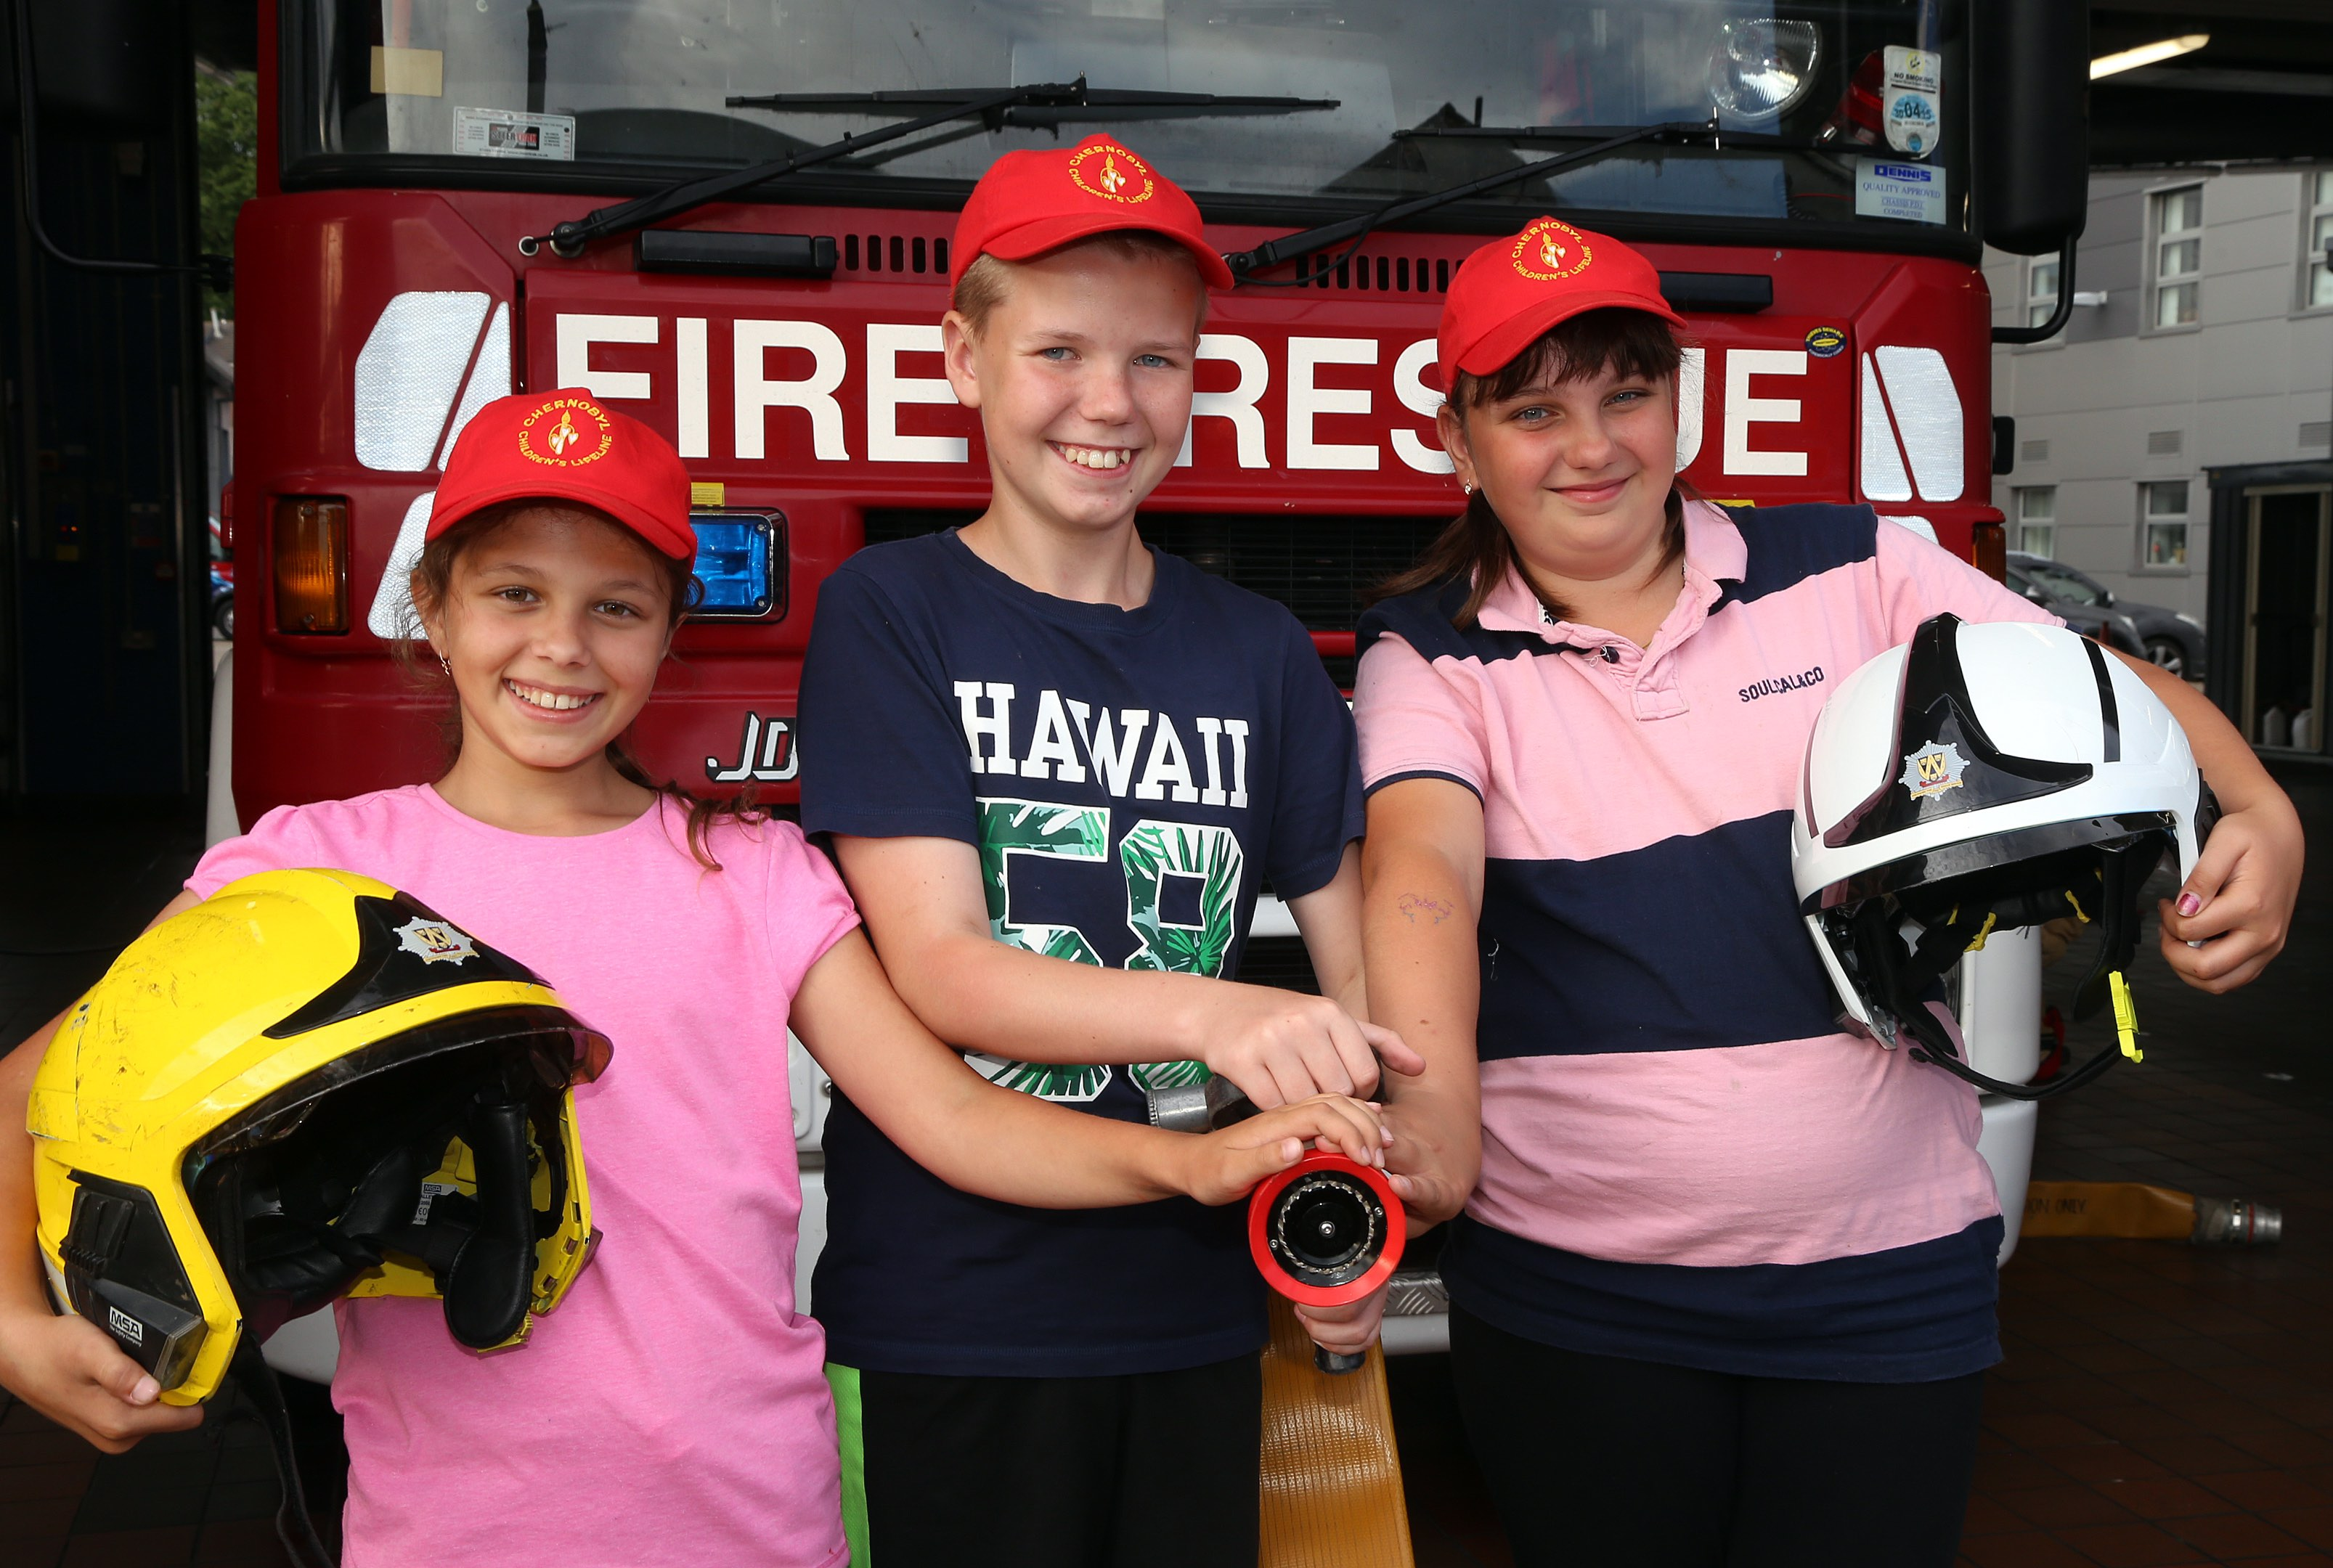 The children with the hose and helmets are L-R, Diana Kamesh (10), Andrey Demidenko (11) and Mariya Kuzmenko (12).